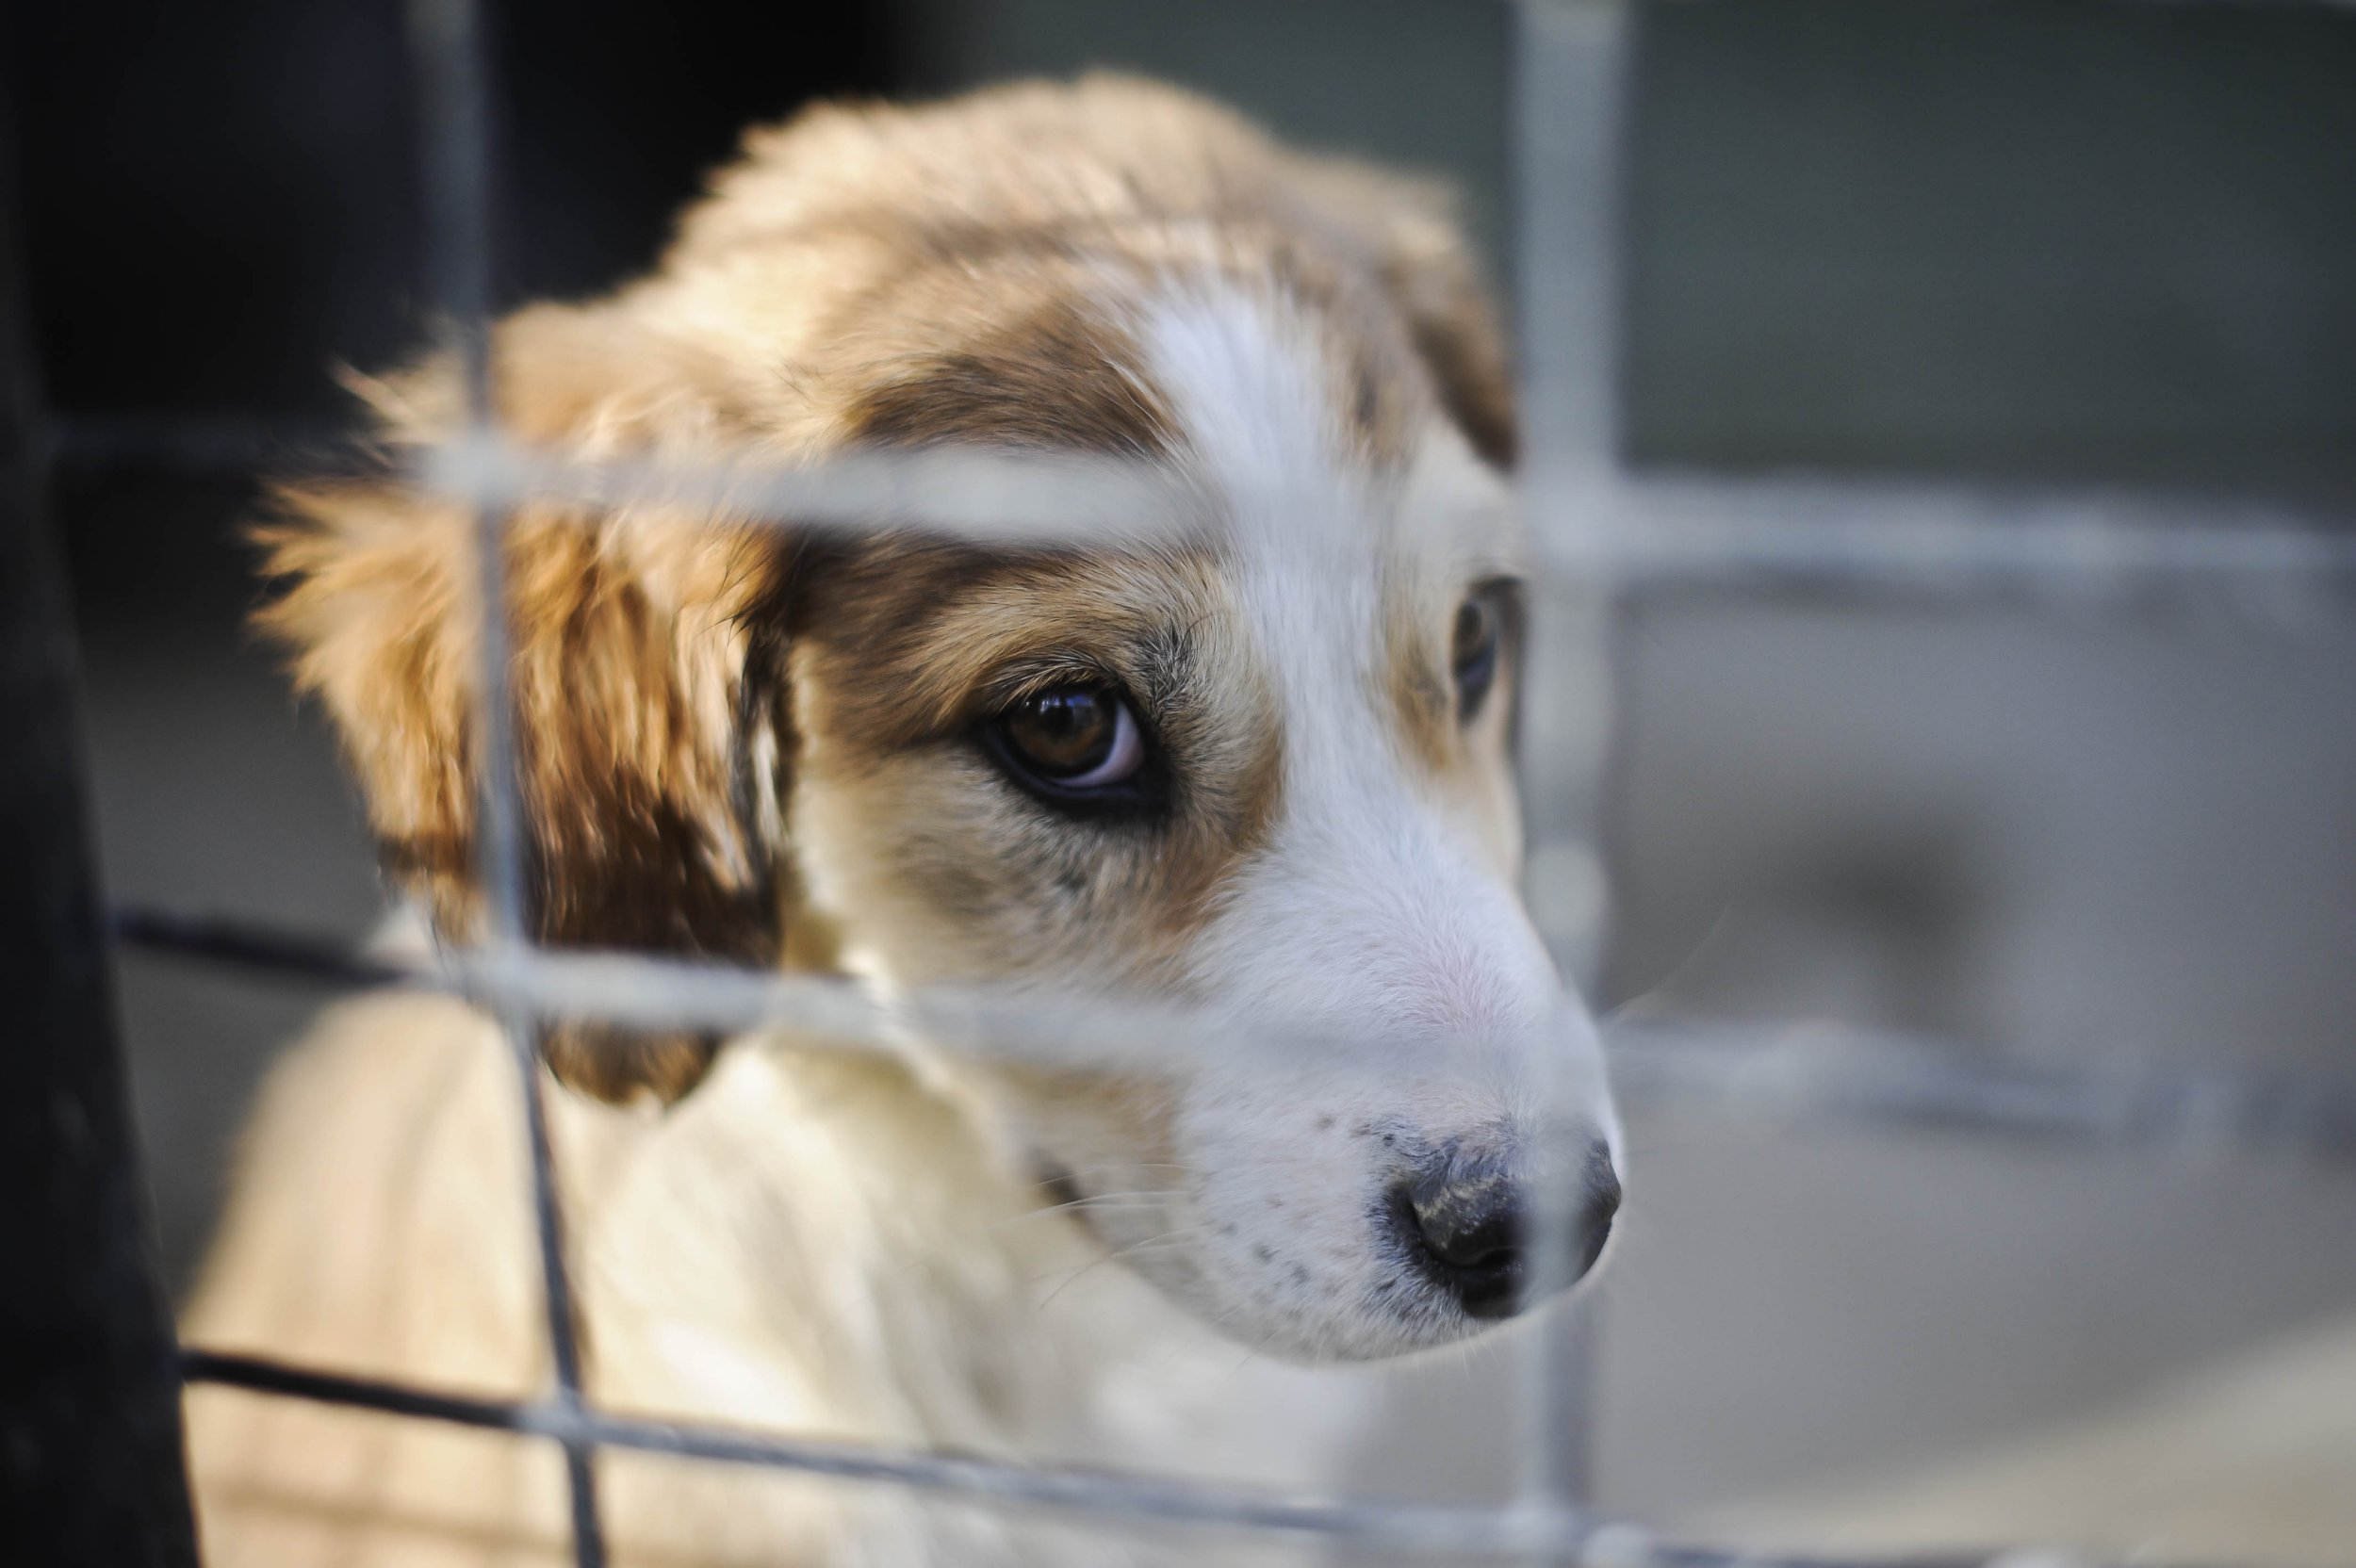 Undated file photo of a puppy. Pet shops are to be banned from selling kittens and puppies by the Government in a crackdown aimed at stopping puppy farming.